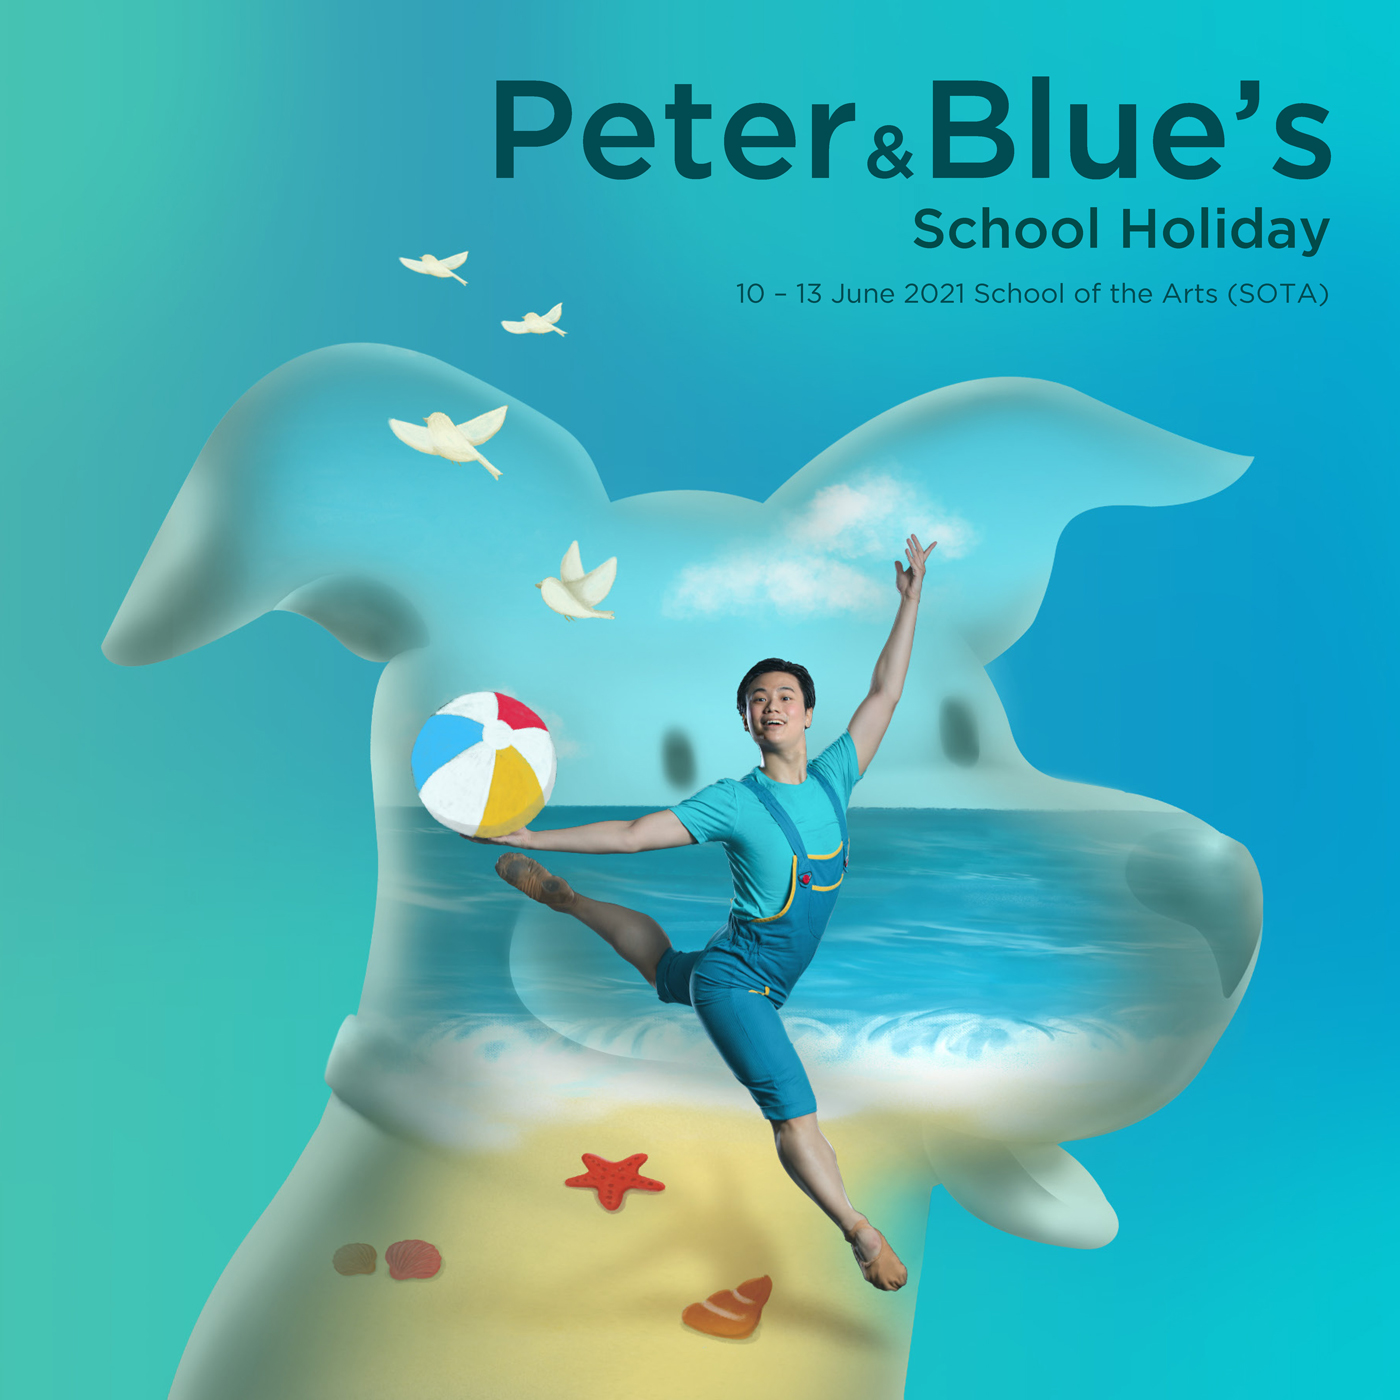 Peter & Blue's School Holiday